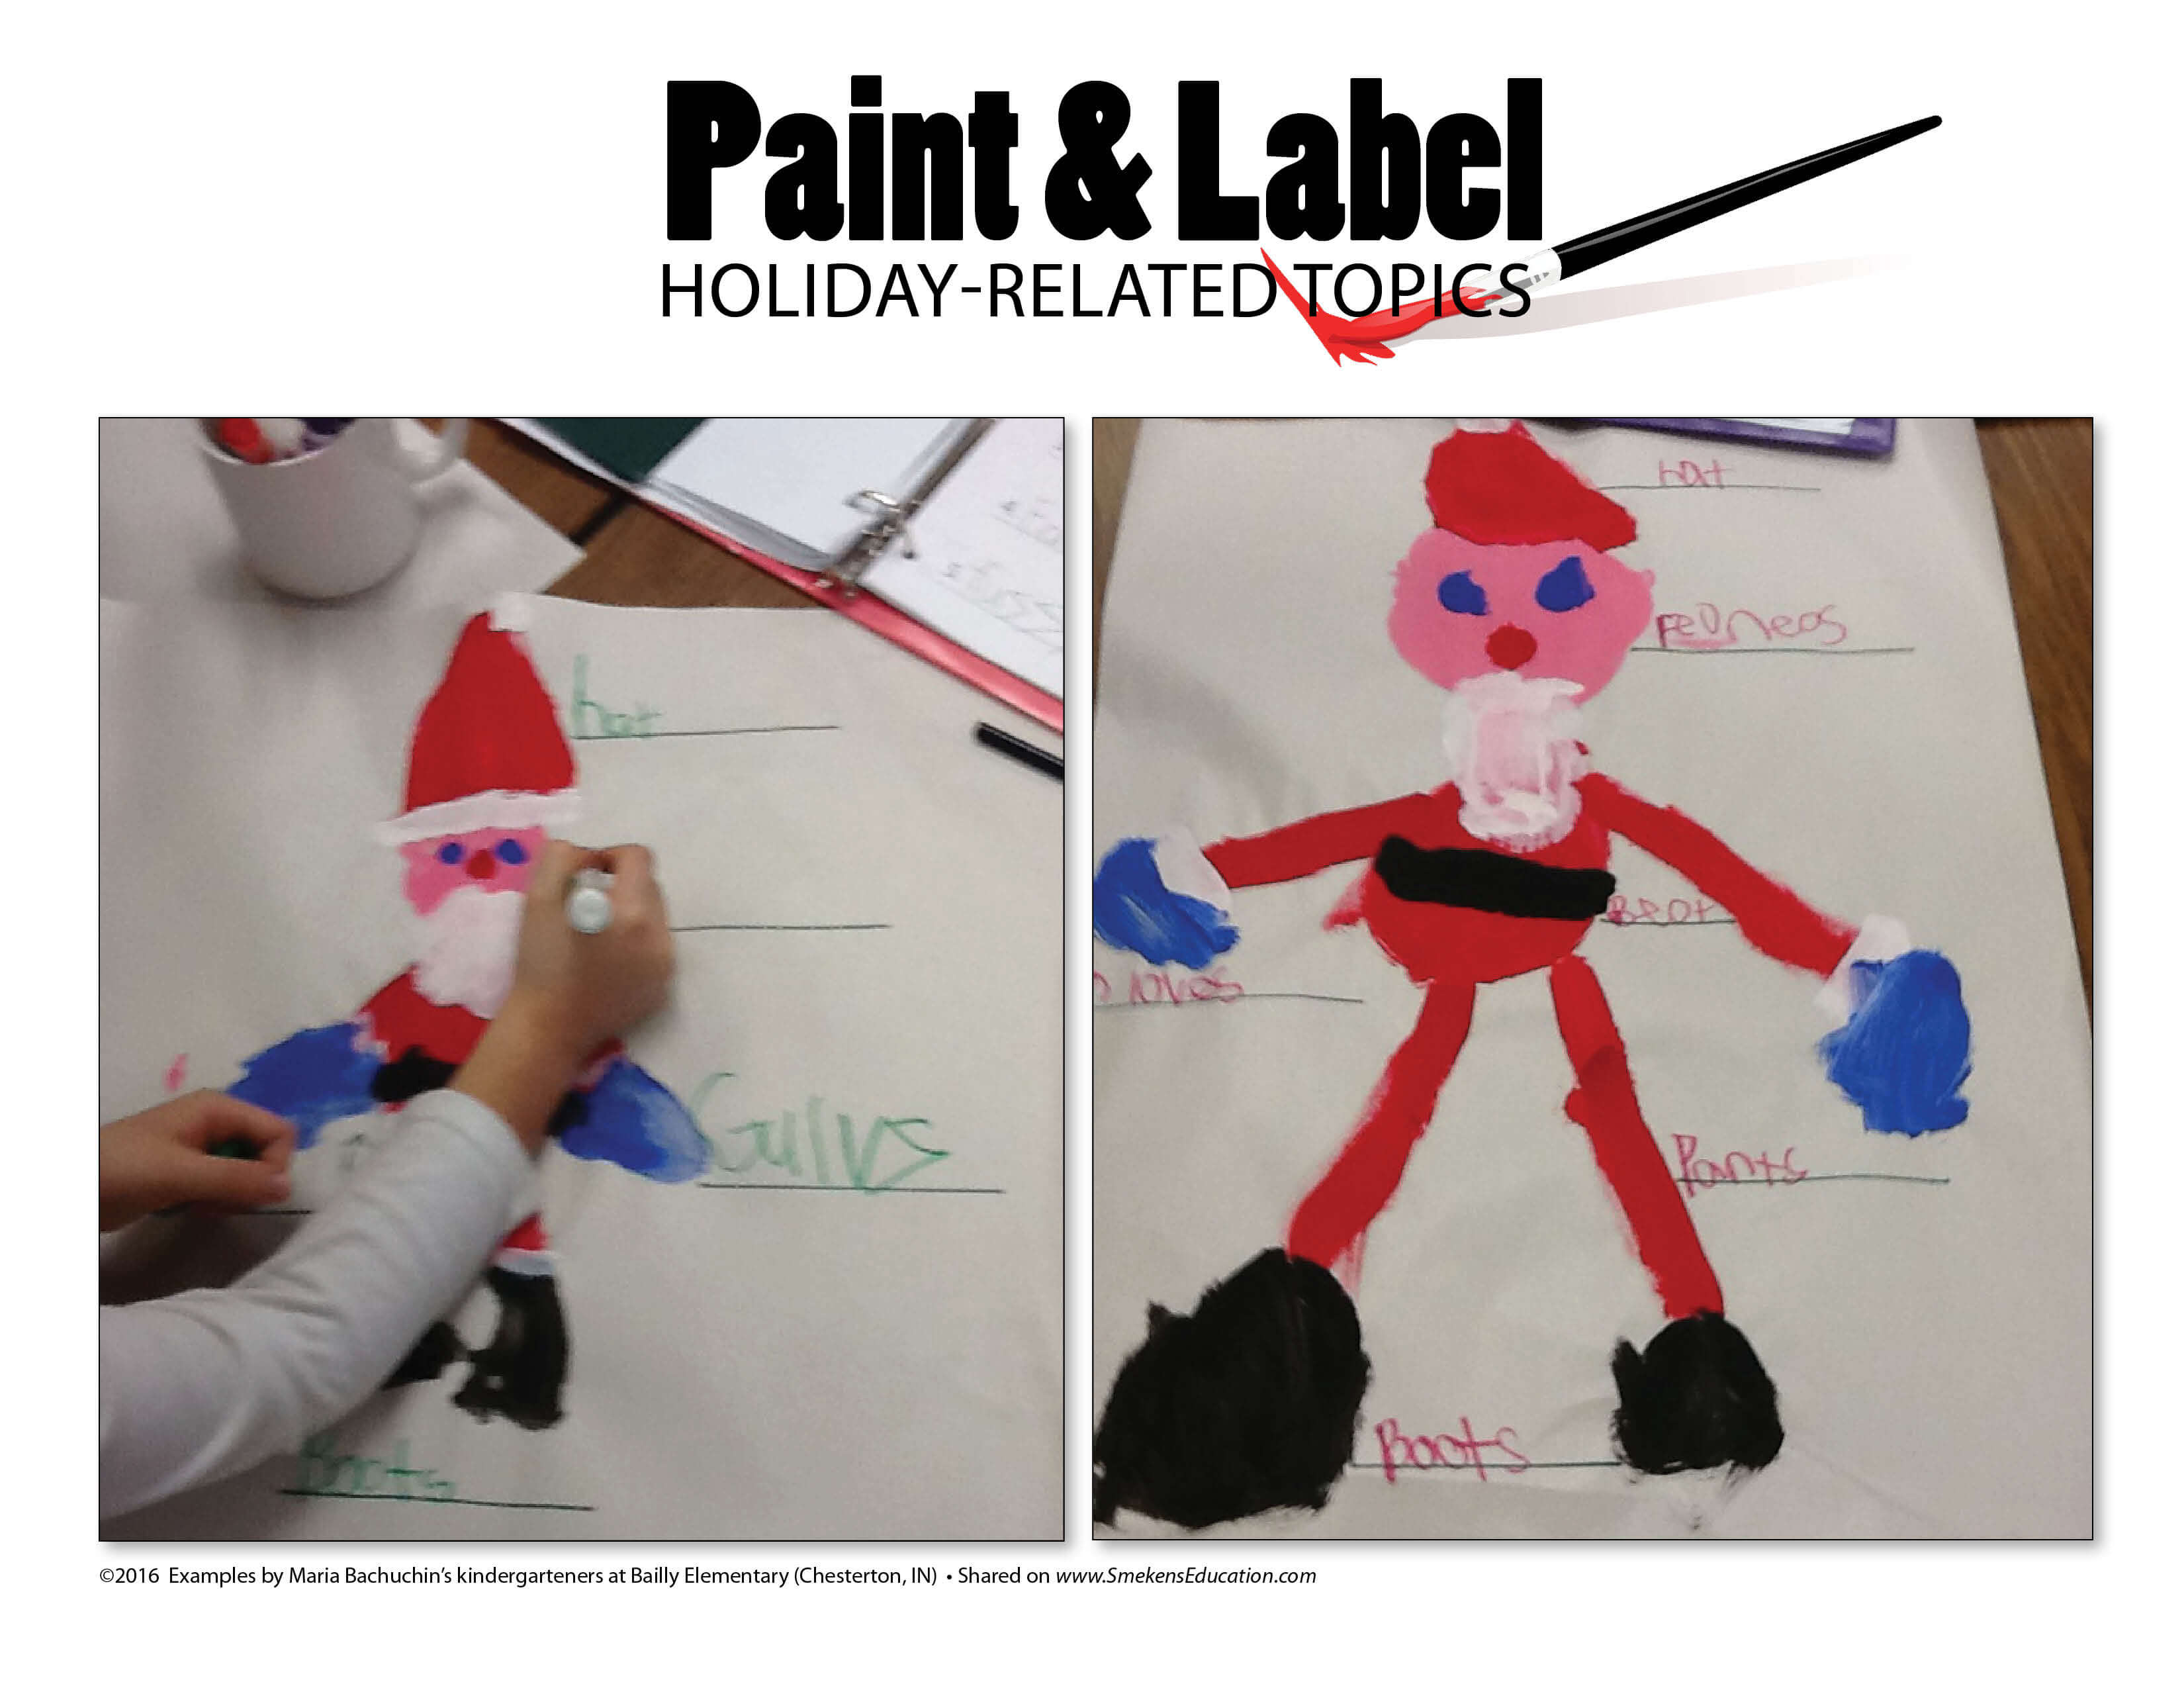 Paint & Label Holiday-Related Topics